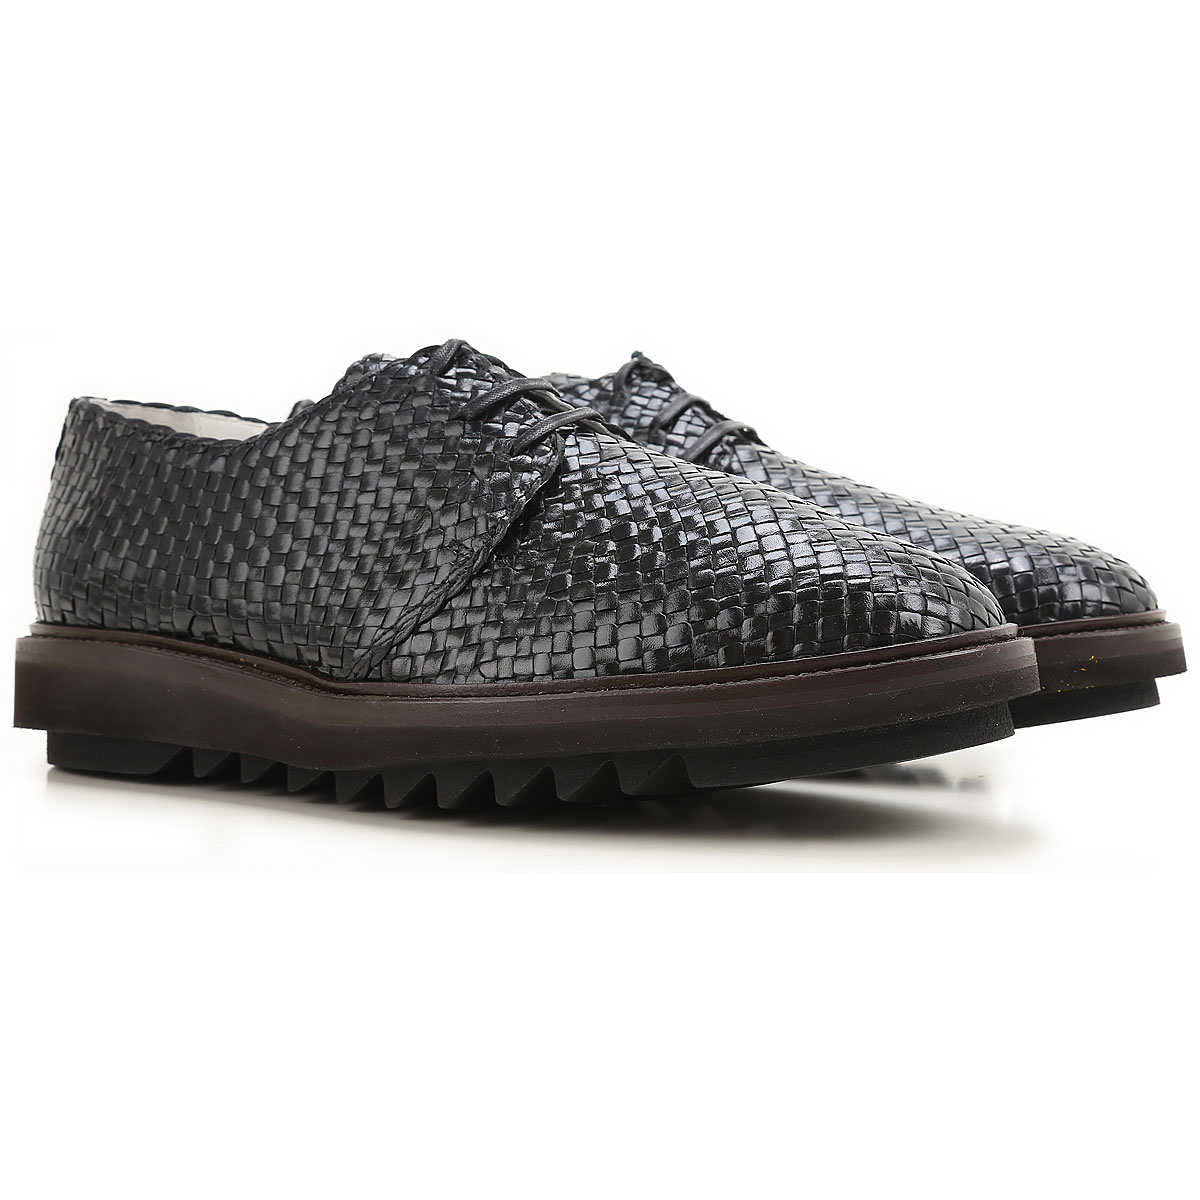 Dolce & Gabbana Lace Up Shoes for Men Oxfords Derbies and Brogues On Sale - GOOFASH